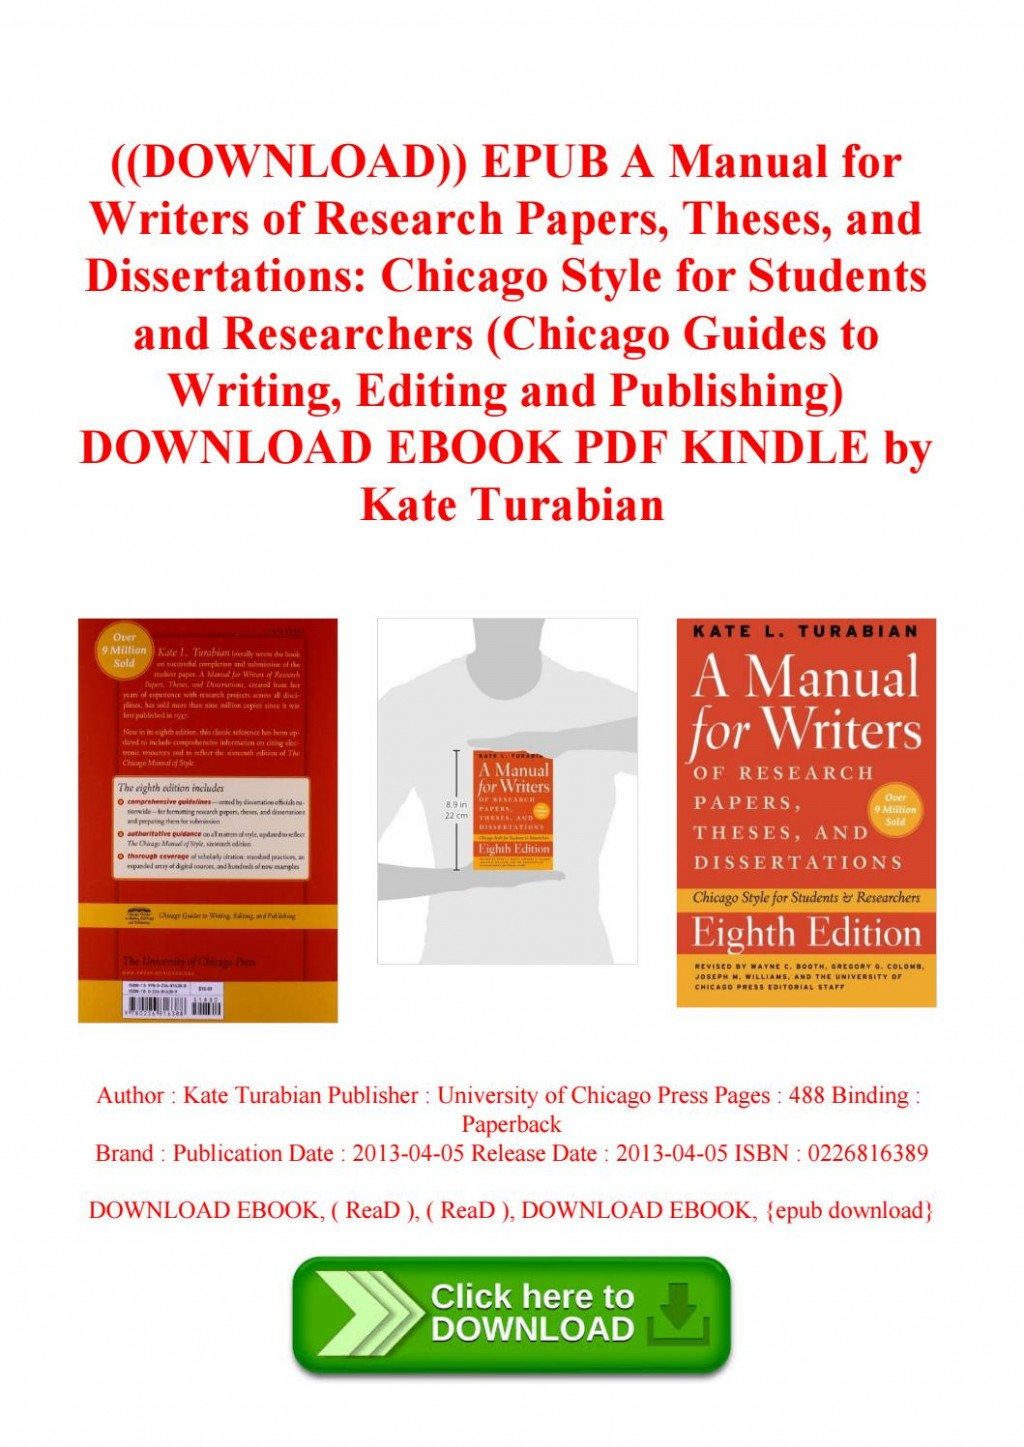 006 Page 1 Research Paper Manual For Writers Of Papers Theses And Sensational A Dissertations Ed. 8 8th Edition Ninth Pdf Large